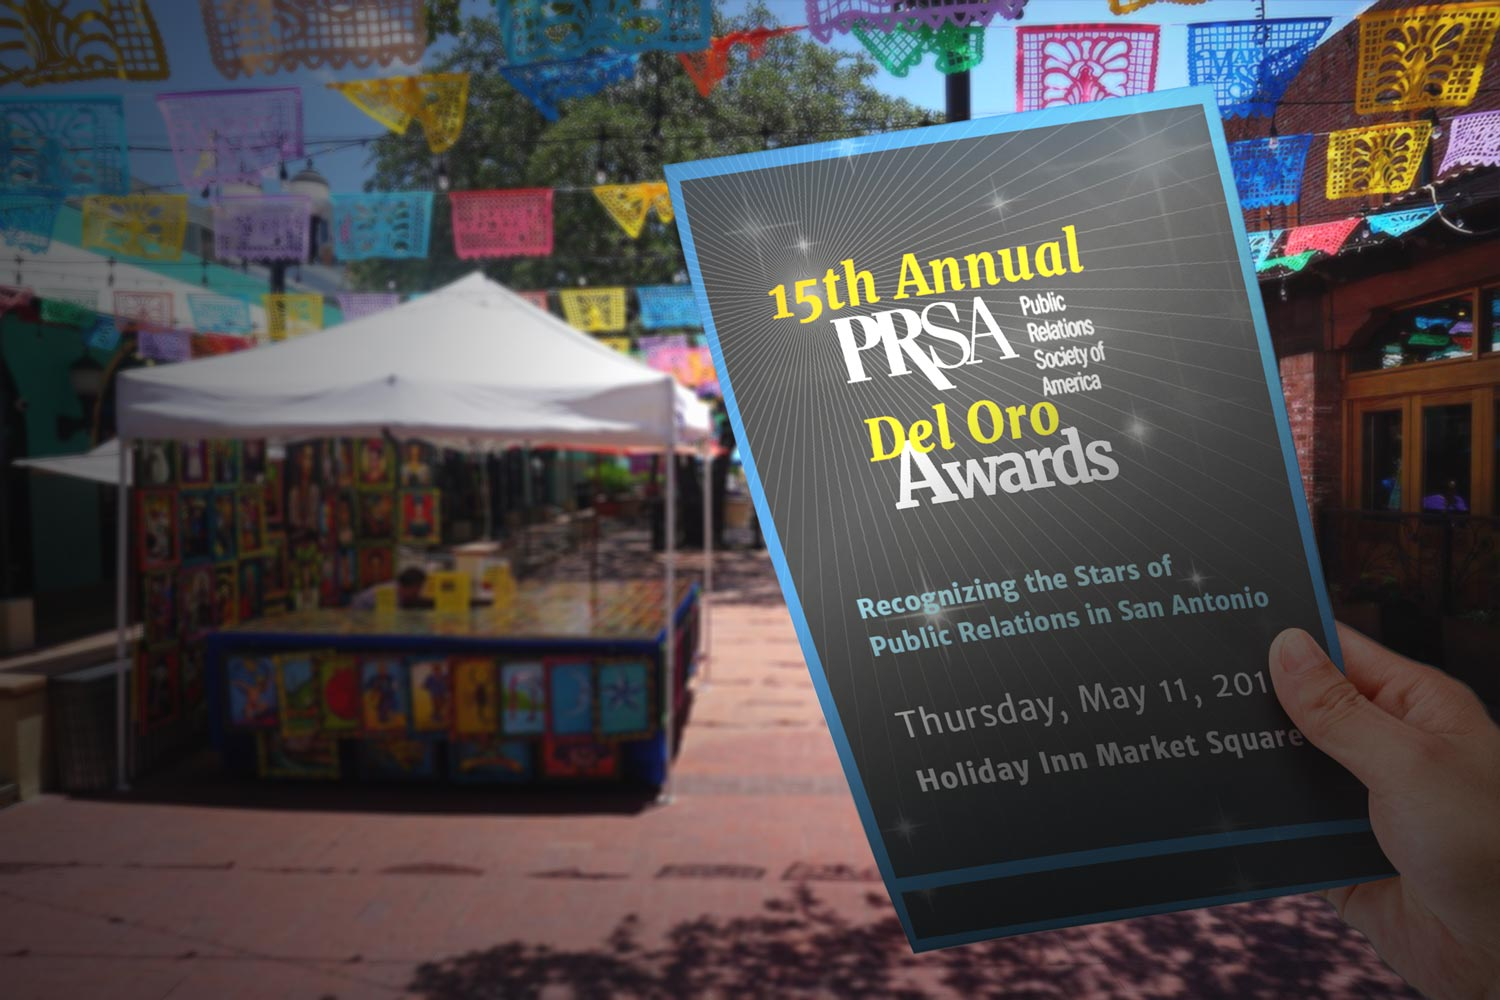 15th Annual PRSA Del Oro Awards Flyer